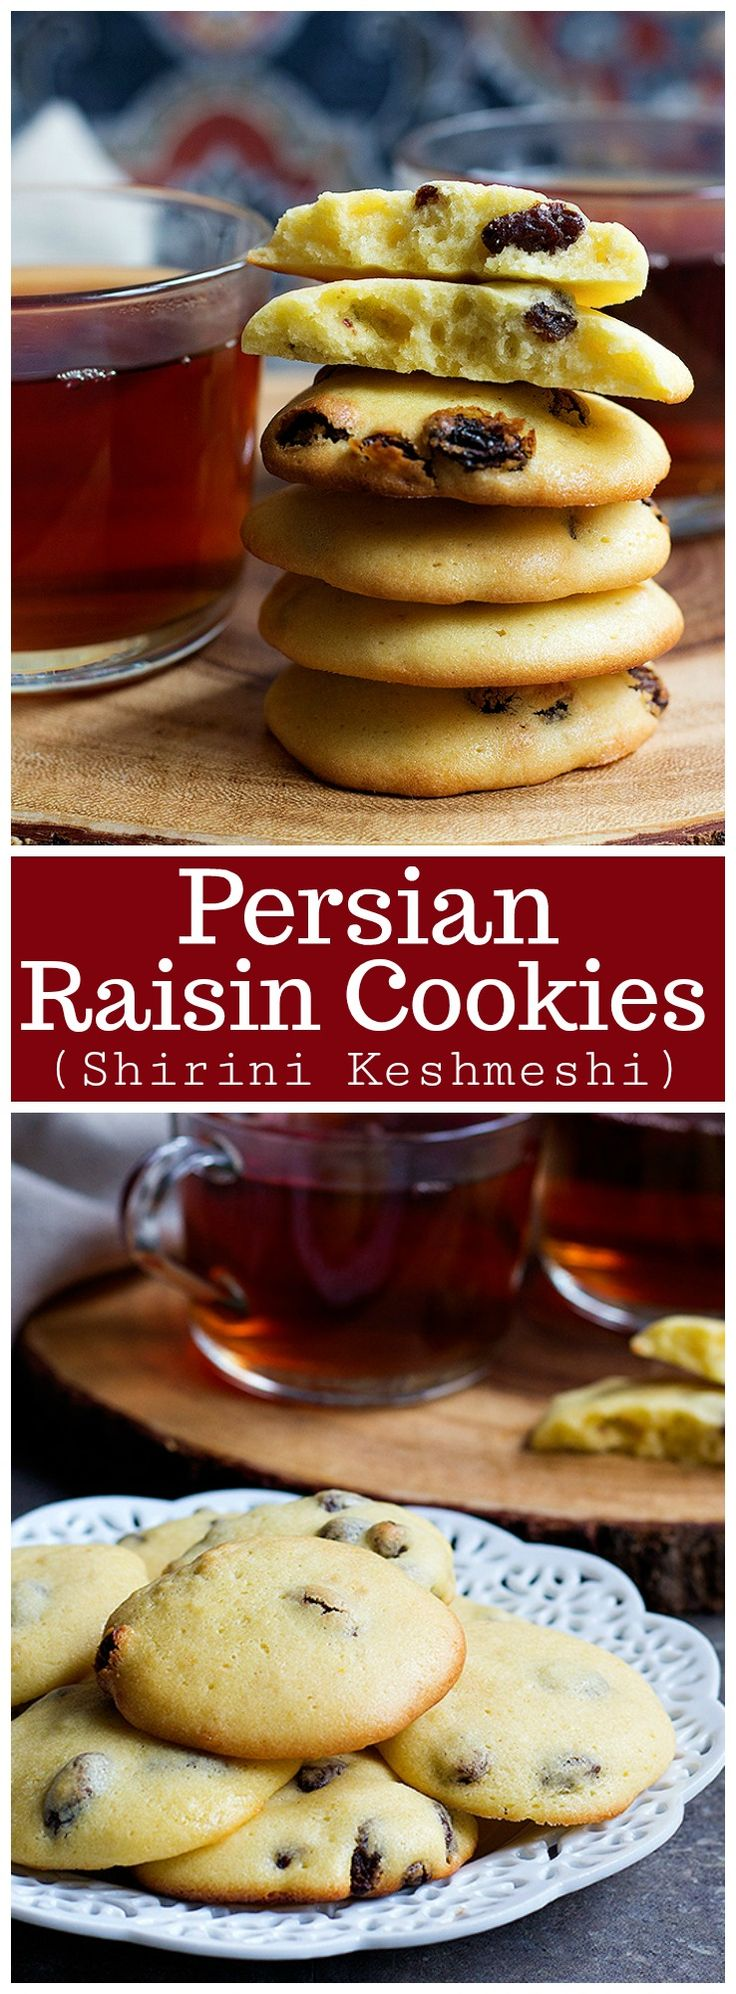 Persian Raisin Cookies (Shirini Keshmeshi) - These delicious and delicate cookies are perfect for the Persian New Year or any other time of the year. They're crunchy on the edges and soft in the center, perfect for a snack or dessert.